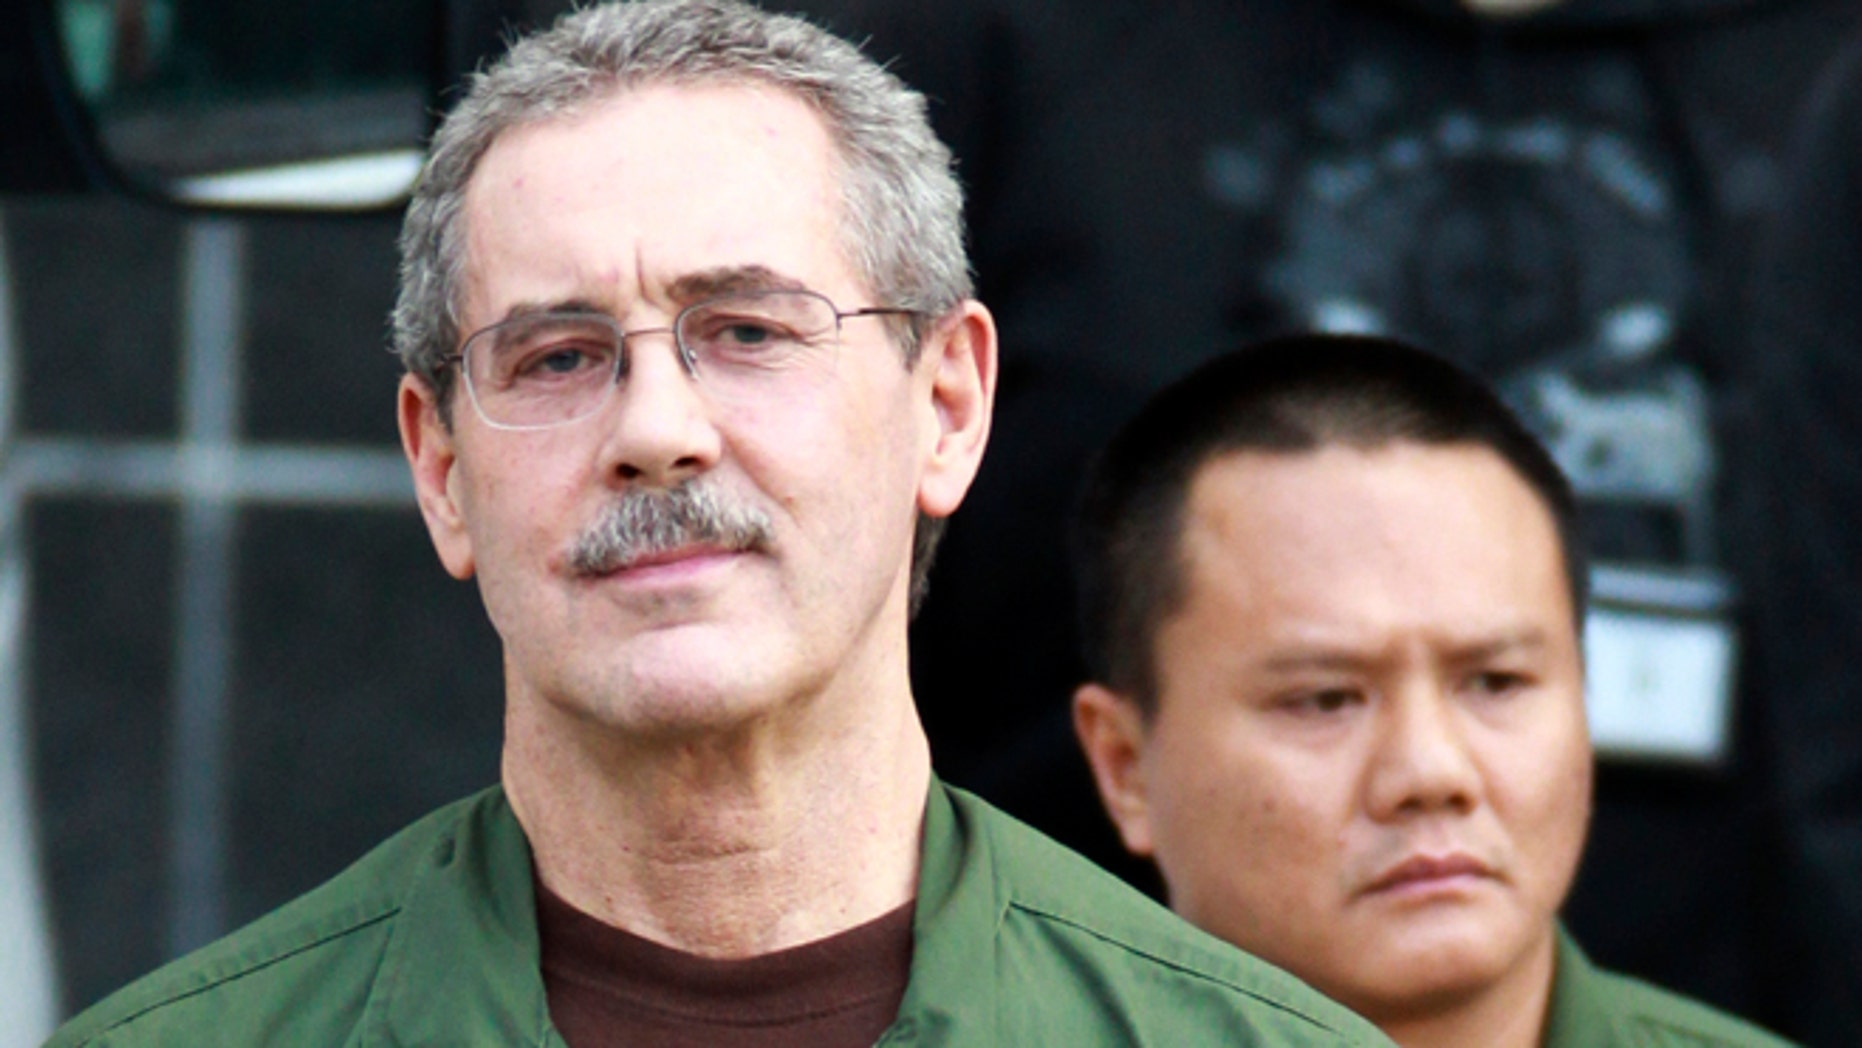 March 6, 2012: R. Allen Stanford leaves the Bob Casey Federal Courthouse in Houston.